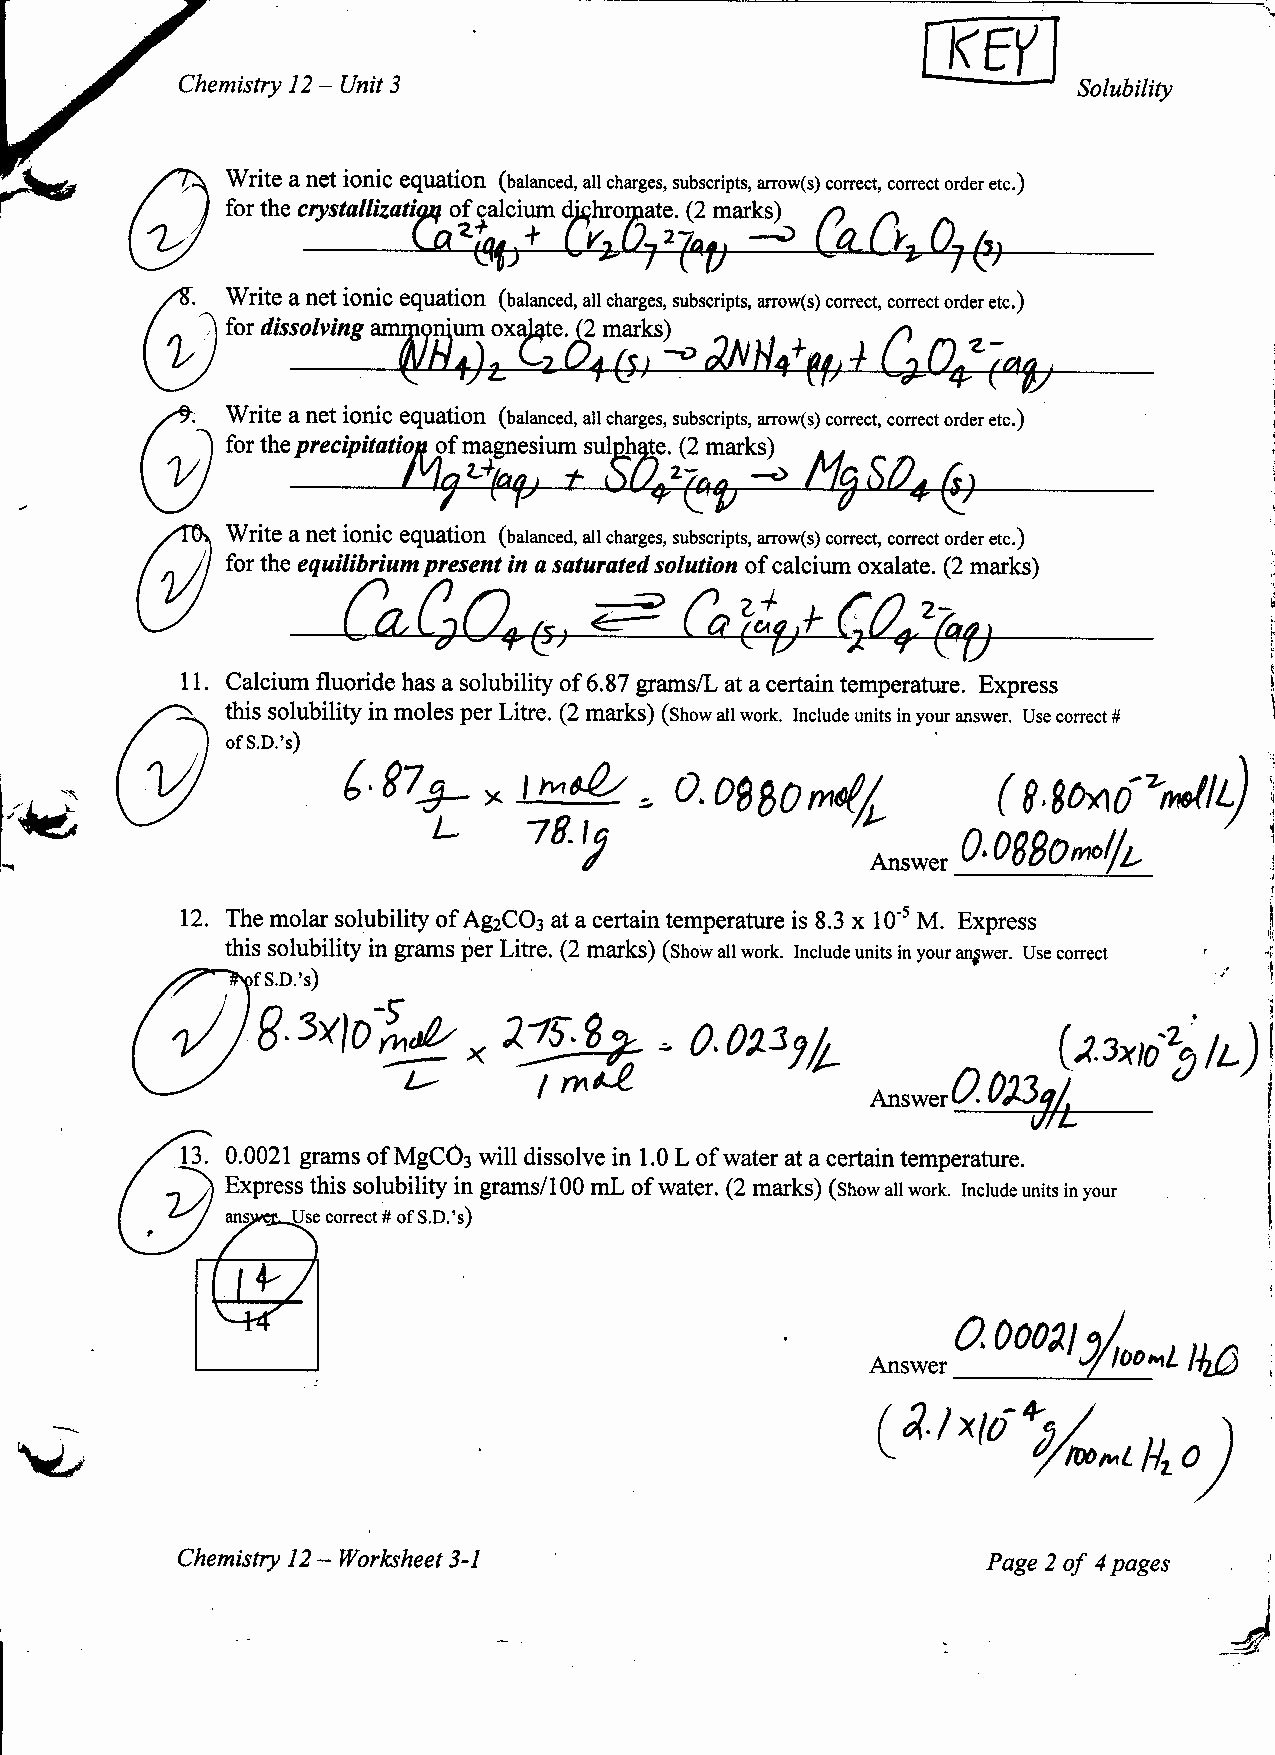 Dimensional Analysis Worksheet Answers Chemistry Best Of Chemistry Unit 1 Worksheet 6 Dimensional Analysis Answer